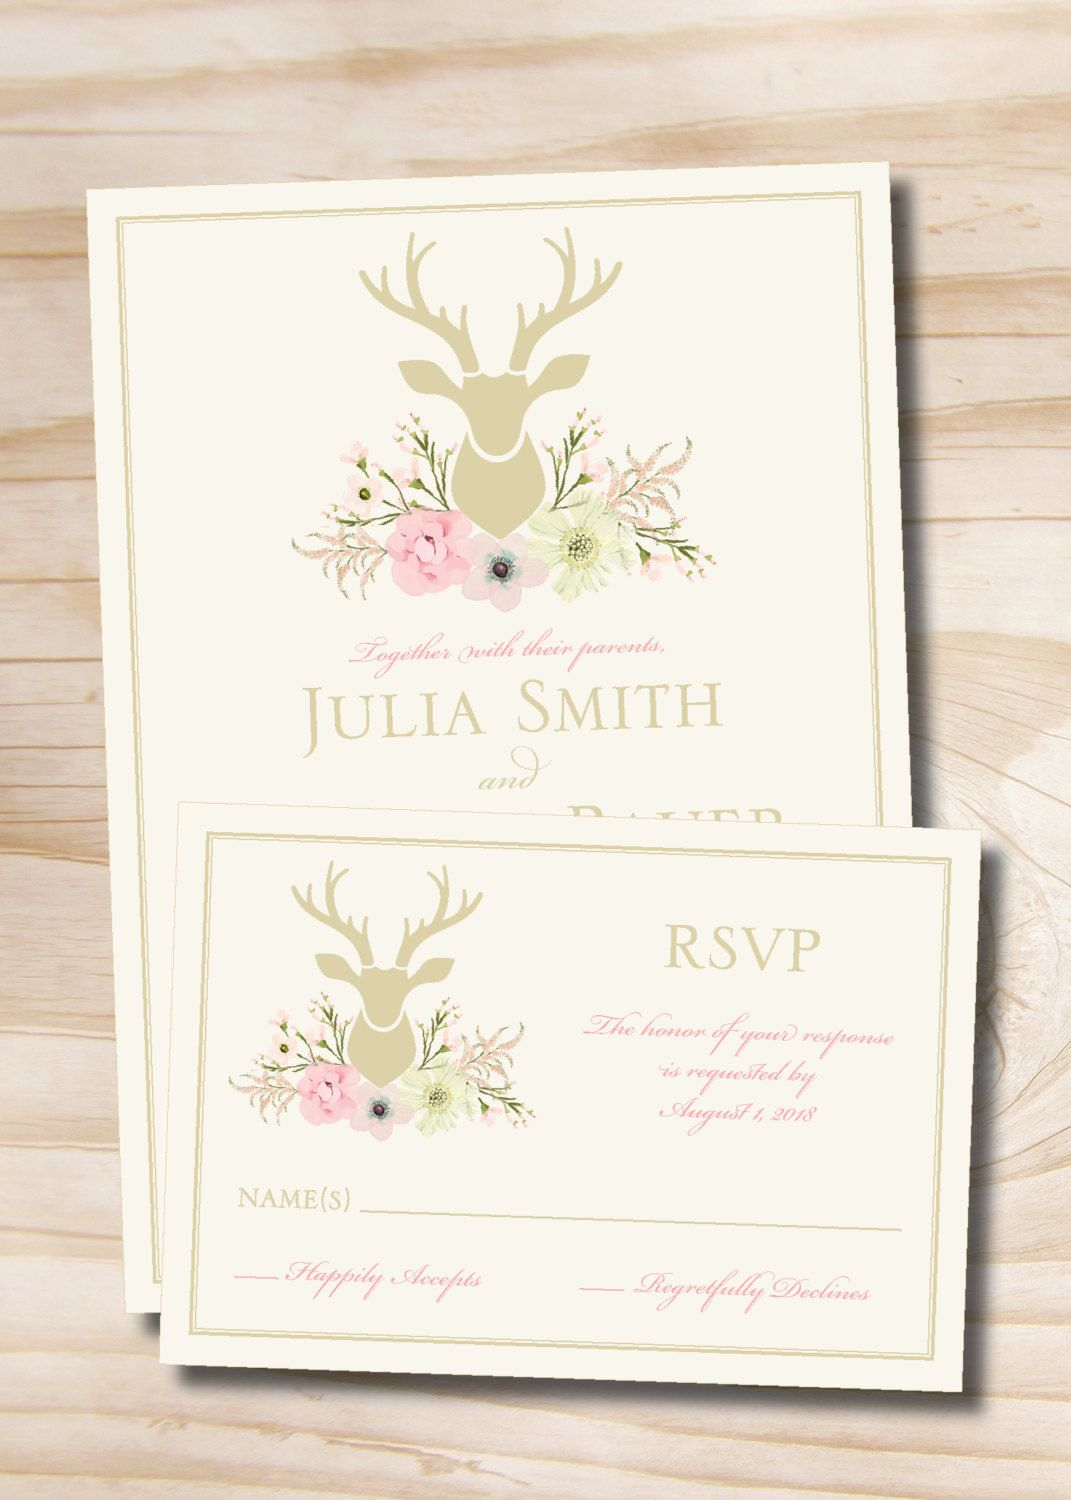 Rustic watercolor deer head buck floral antlers wedding invitation rustic watercolor deer head buck floral antlers wedding invitation response card invitation suite stopboris Choice Image